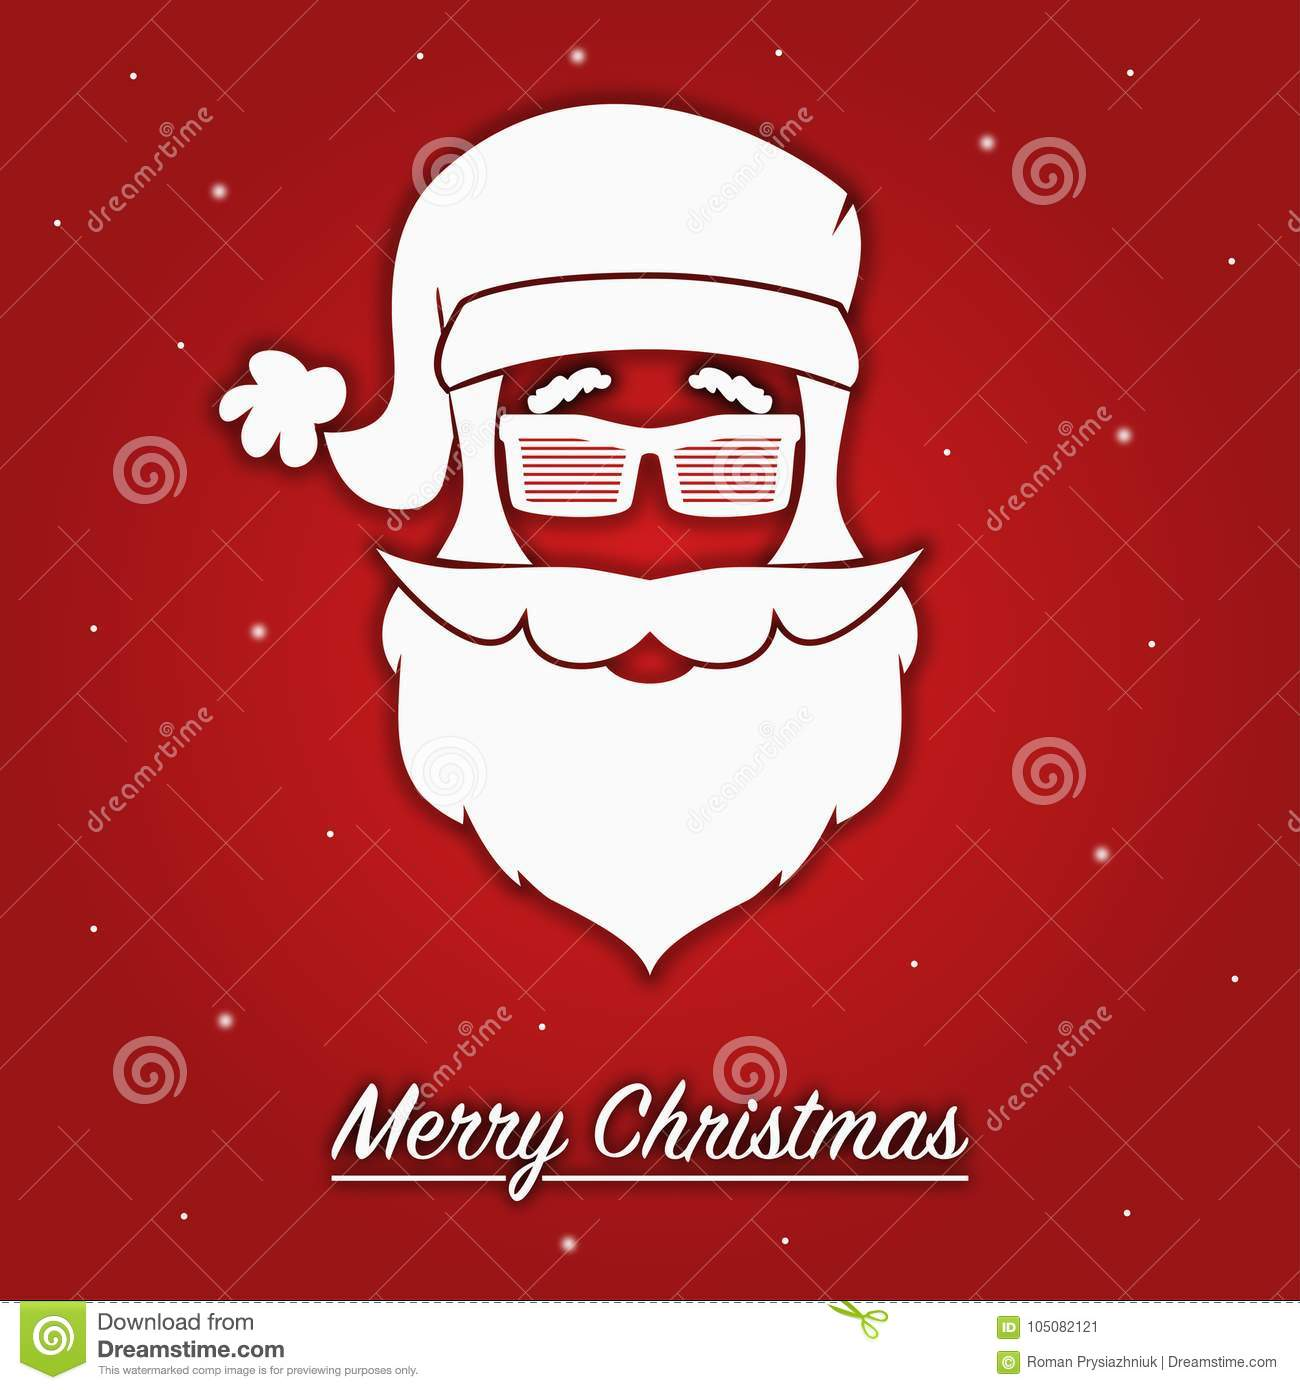 Merry Christmas Greeting Card With Silhouette Of Head Santa Claus In ...